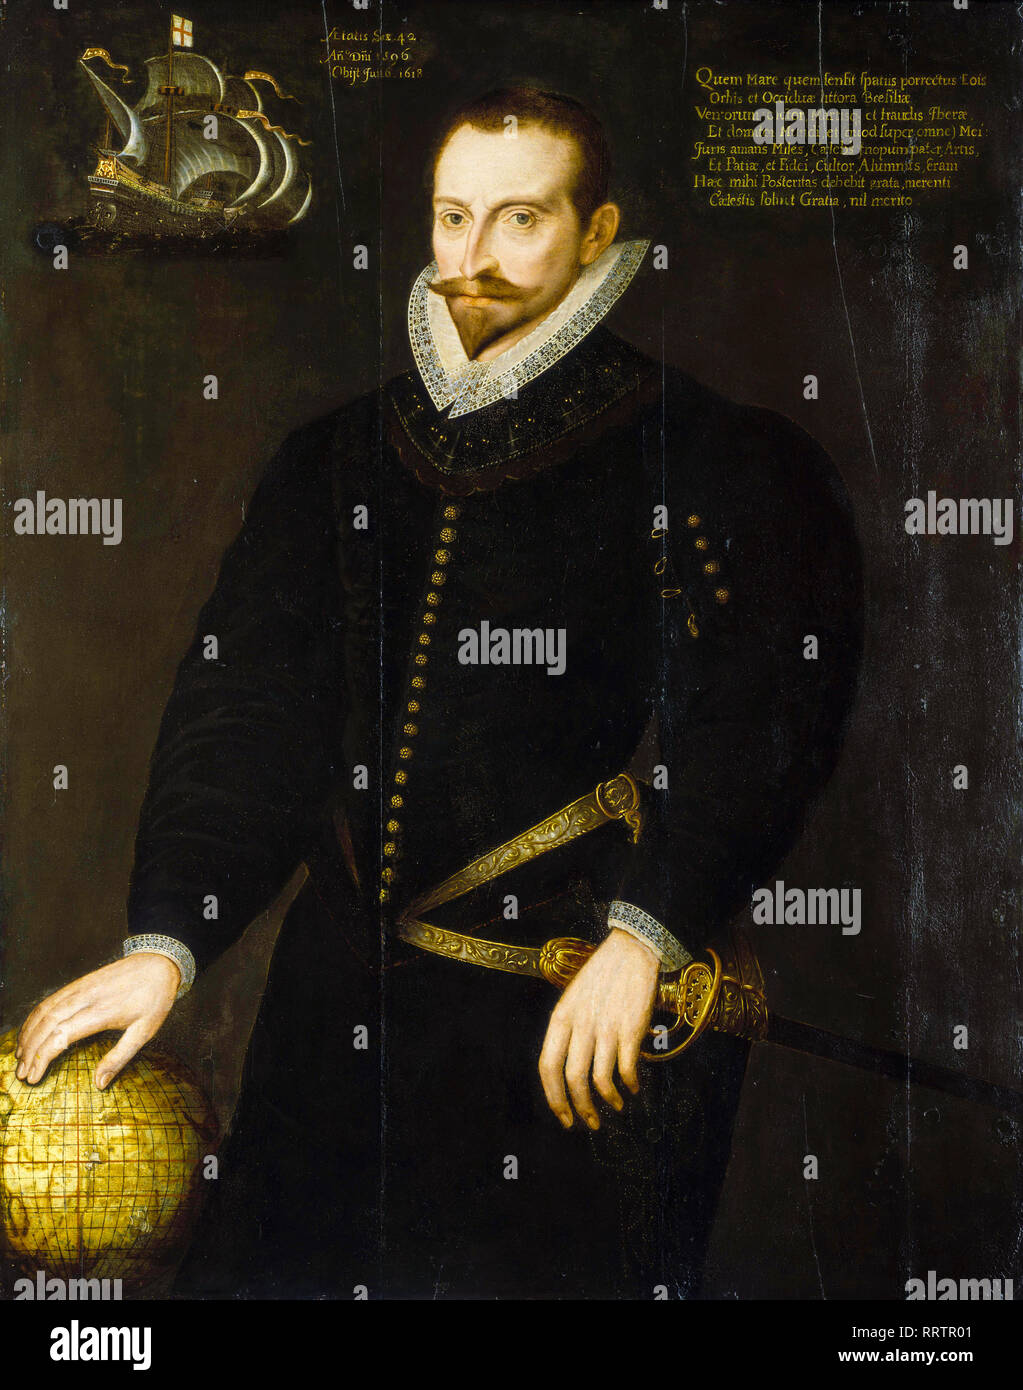 Sir James Lancaster (1554/5-1618), portrait painting,1596 - Stock Image